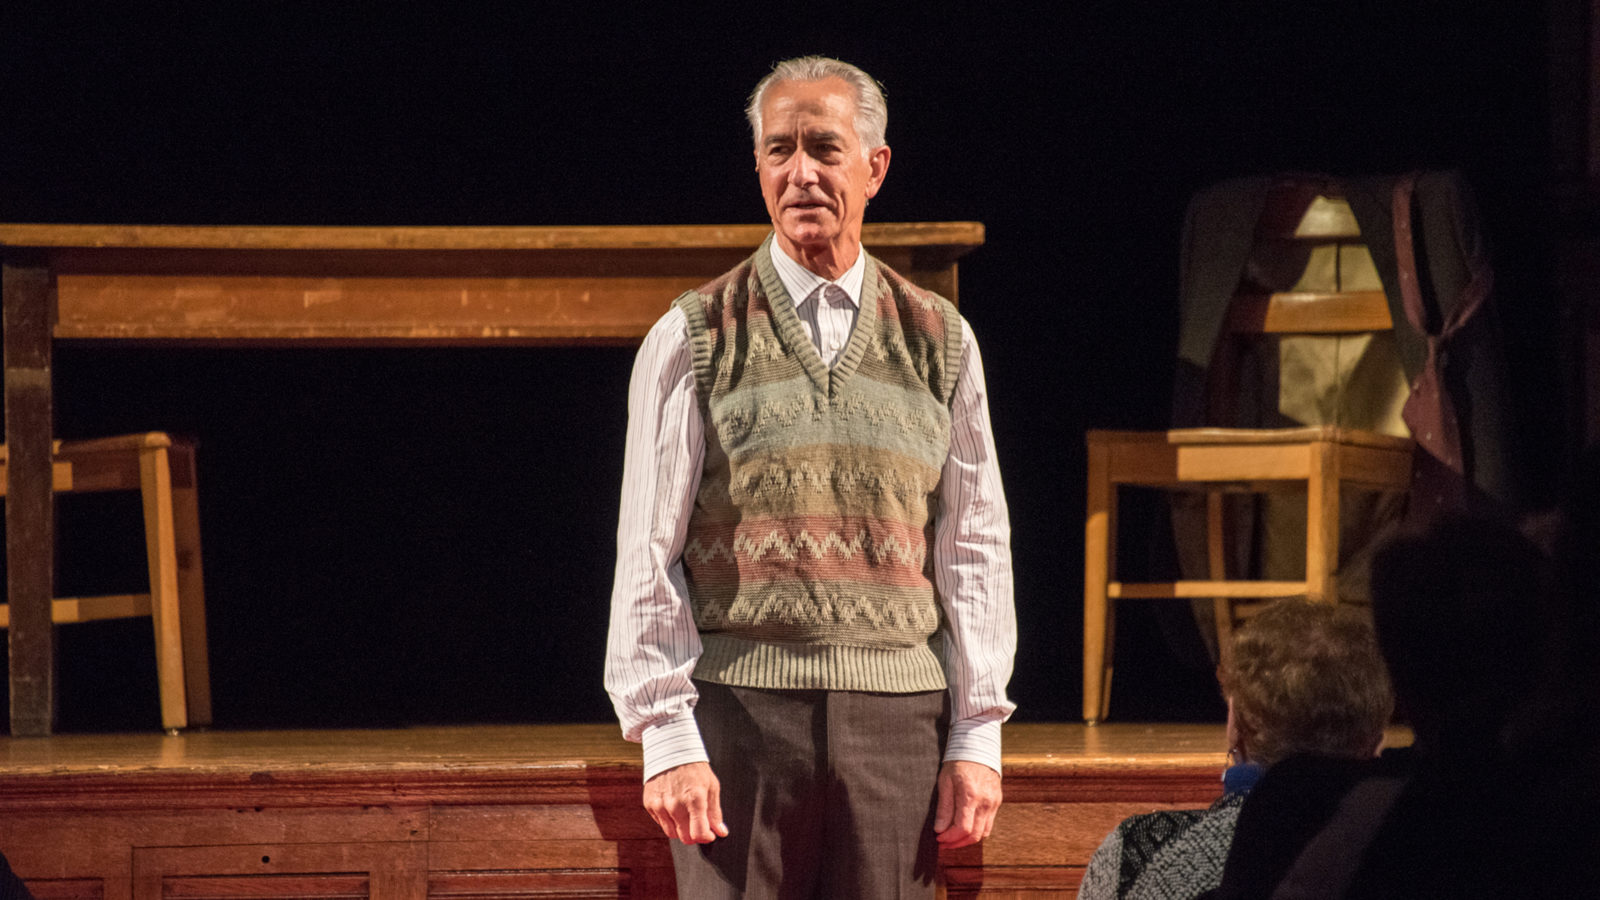 David Strathairn on stage with a desk and chairs playing Jan Karski